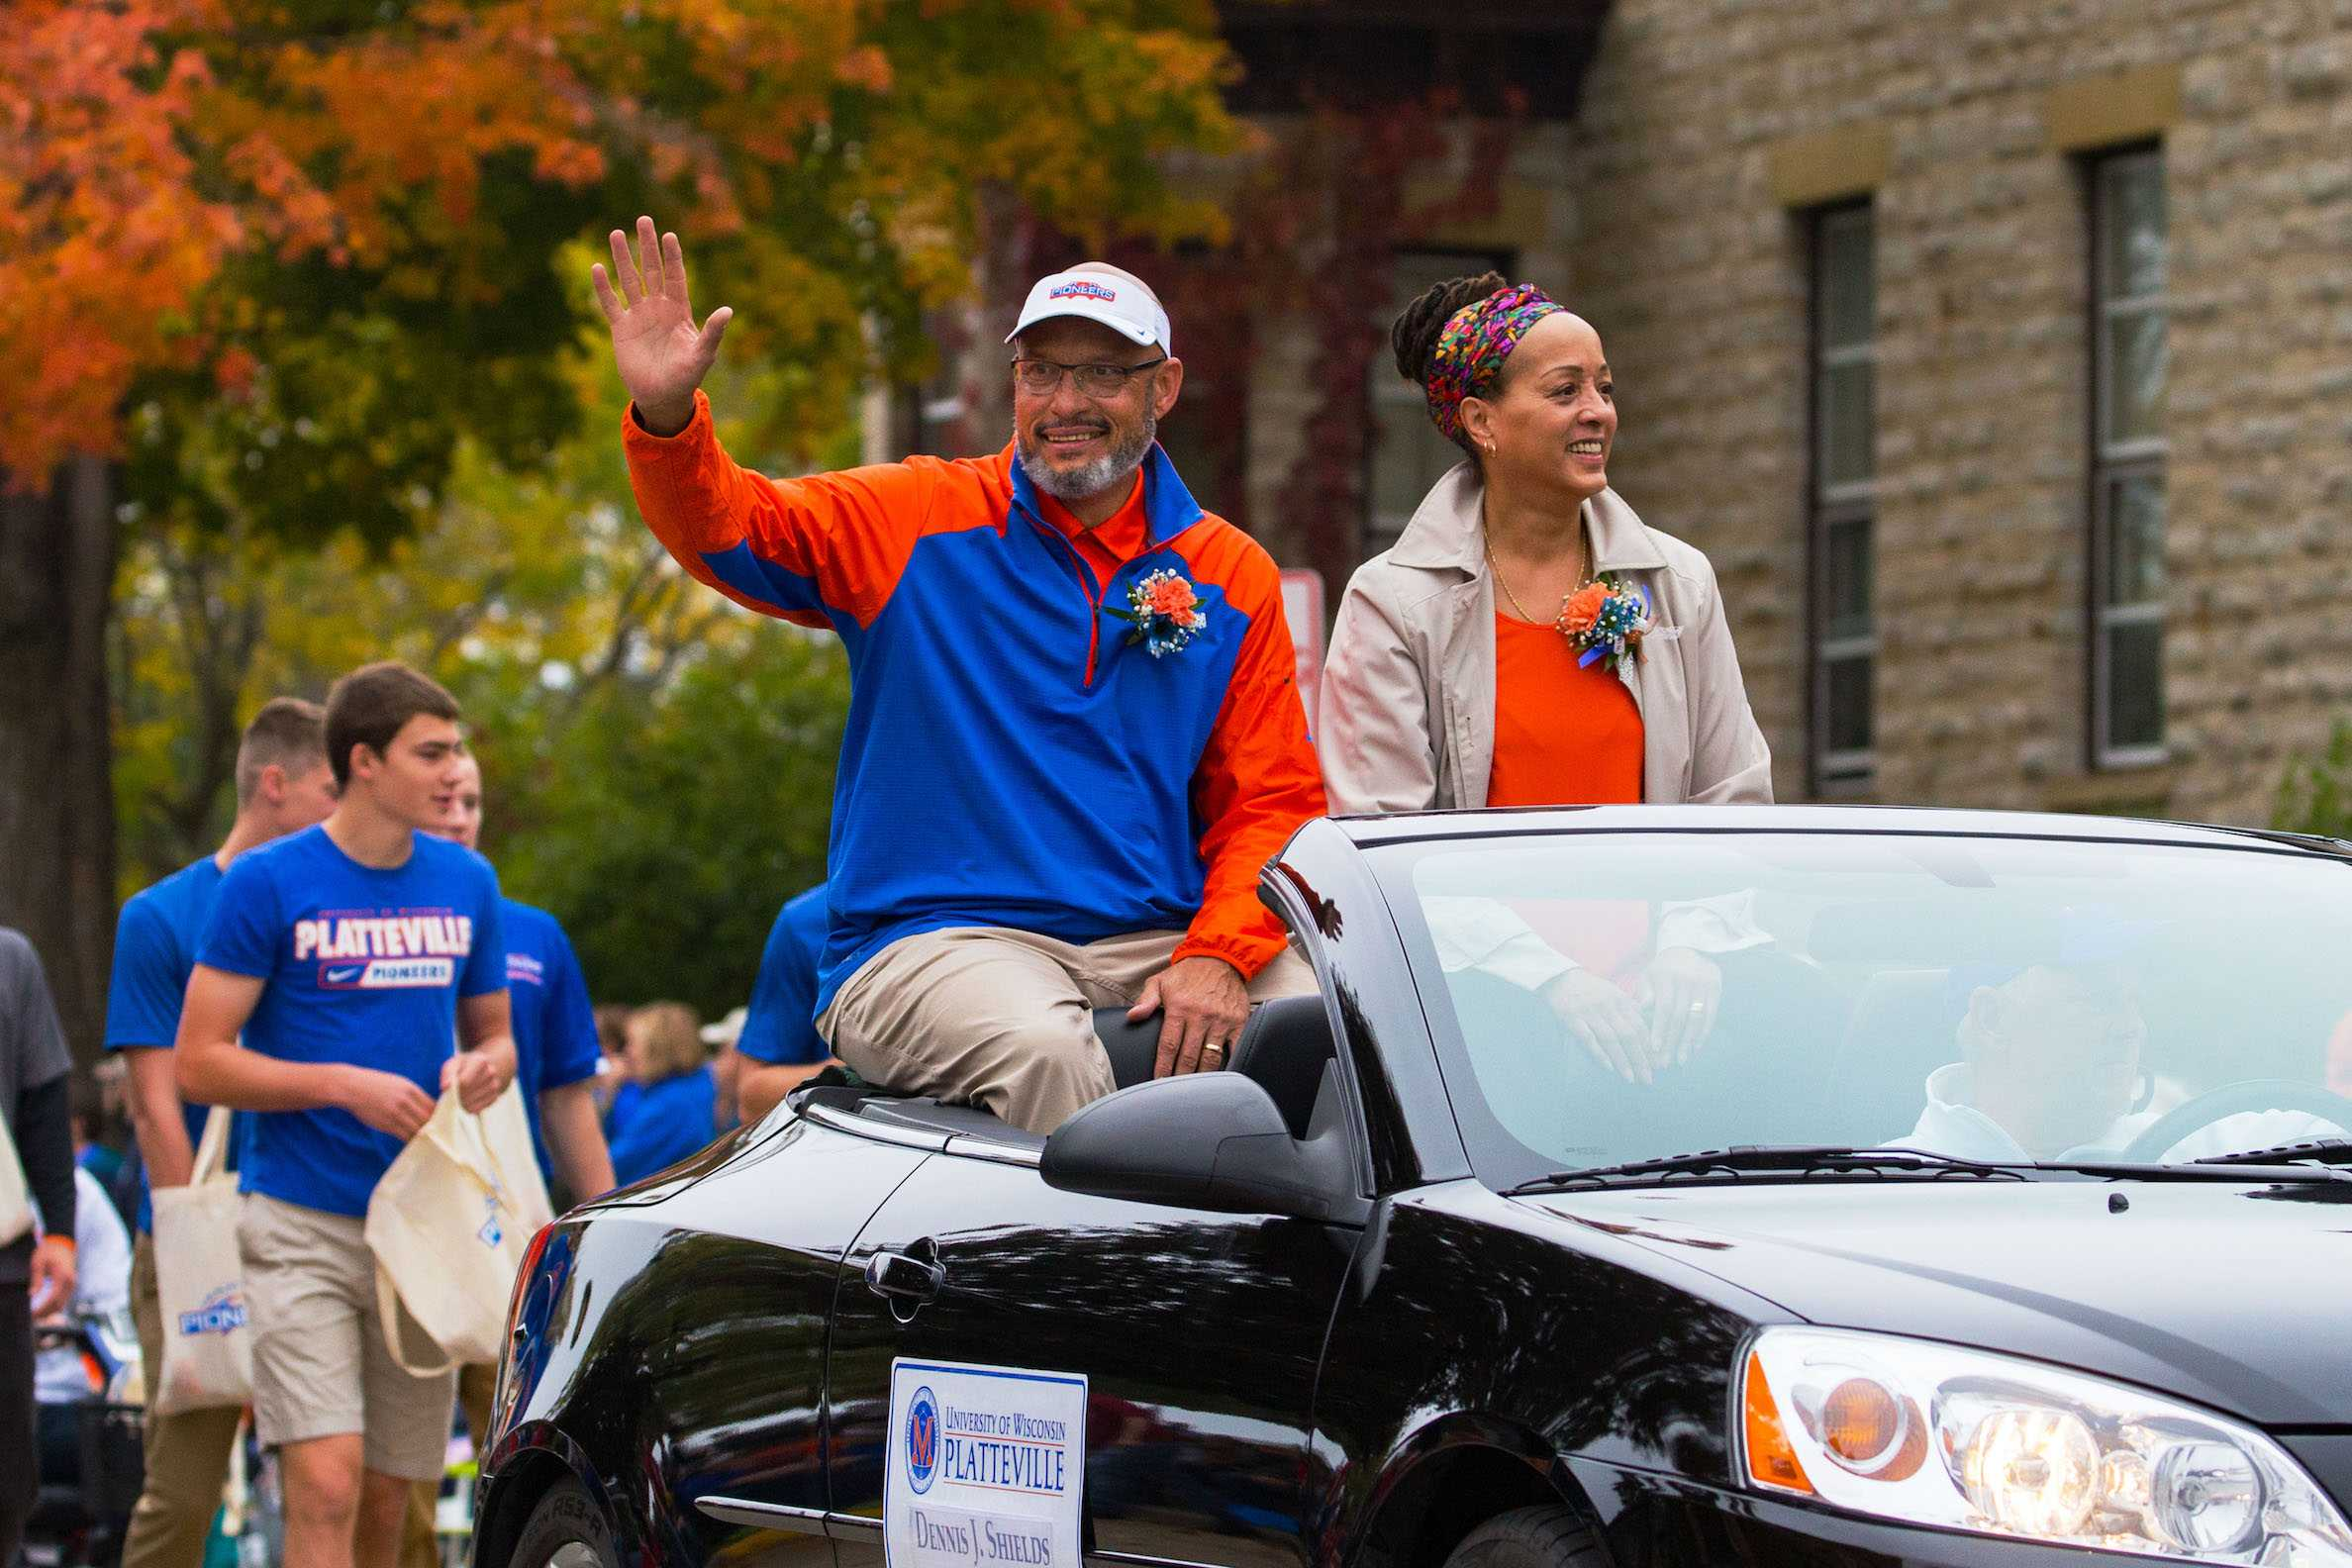 Dennis Shields   continues to support UW-Platteville Pioneers as their chancellor.